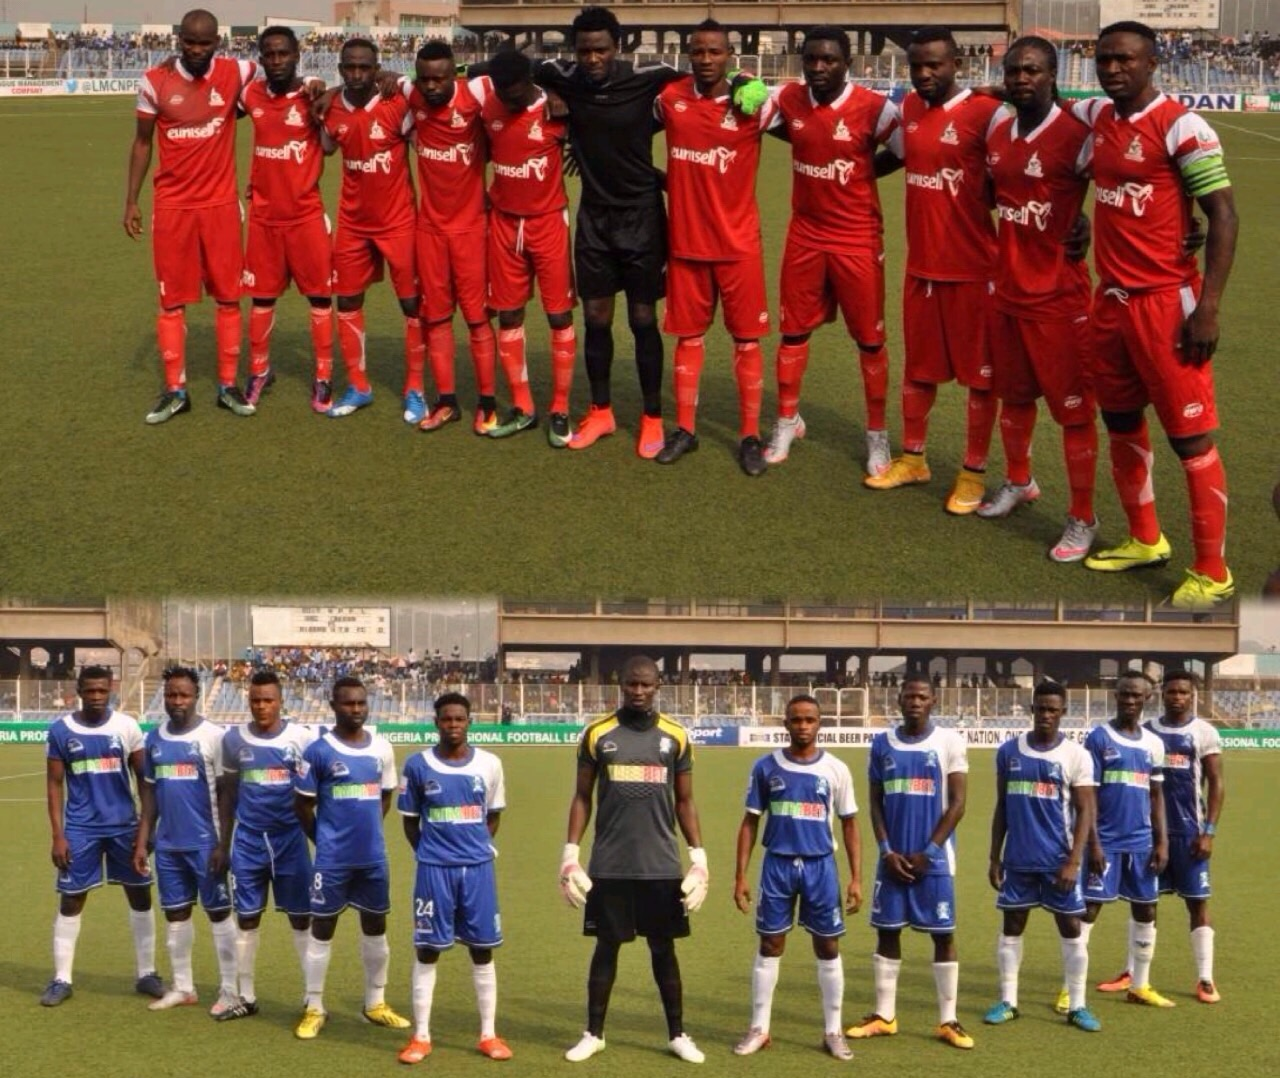 NPFL: Odumegwu Scores As Dominant Rivers United Pip 3SC